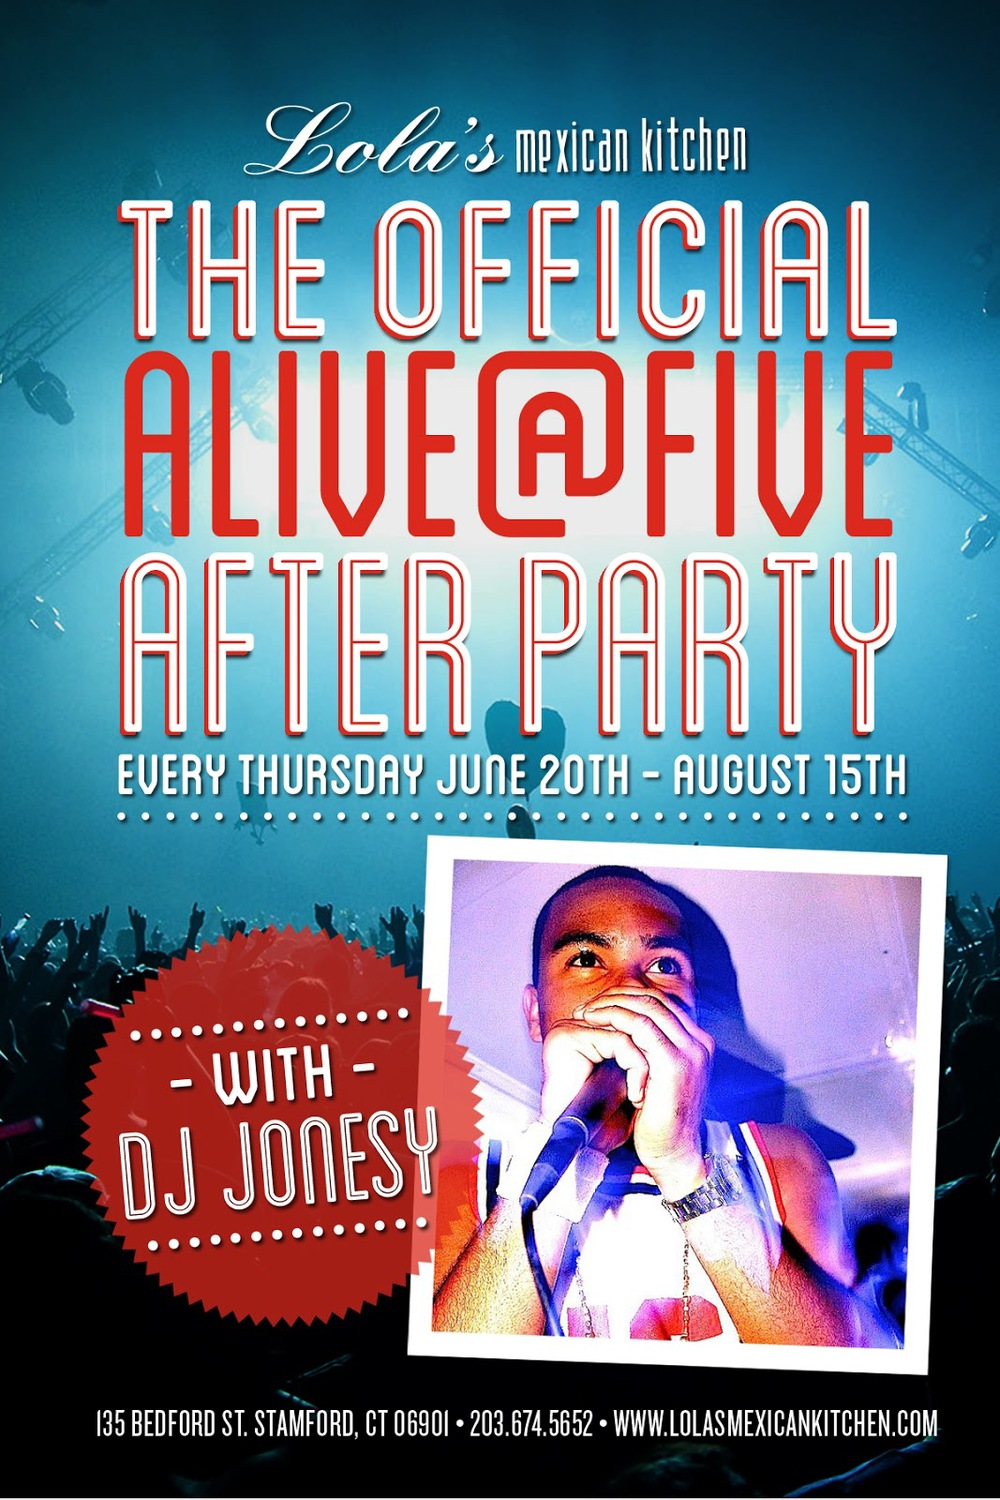 THE OFFICIAL ALIVE @ FIVE AFTER PARTY BEGINS THURSDAY JUNE 20TH - AUG. 15TH @ LOLAS MEXICAN KITCHEN.  MUSIC BY YOURS TRULY!      EVERY THURSDAY 9PM - CLOSE    LOLA'S MEXICAN KITCHEN    135 BEDFORD ST.     STAMFORD CT